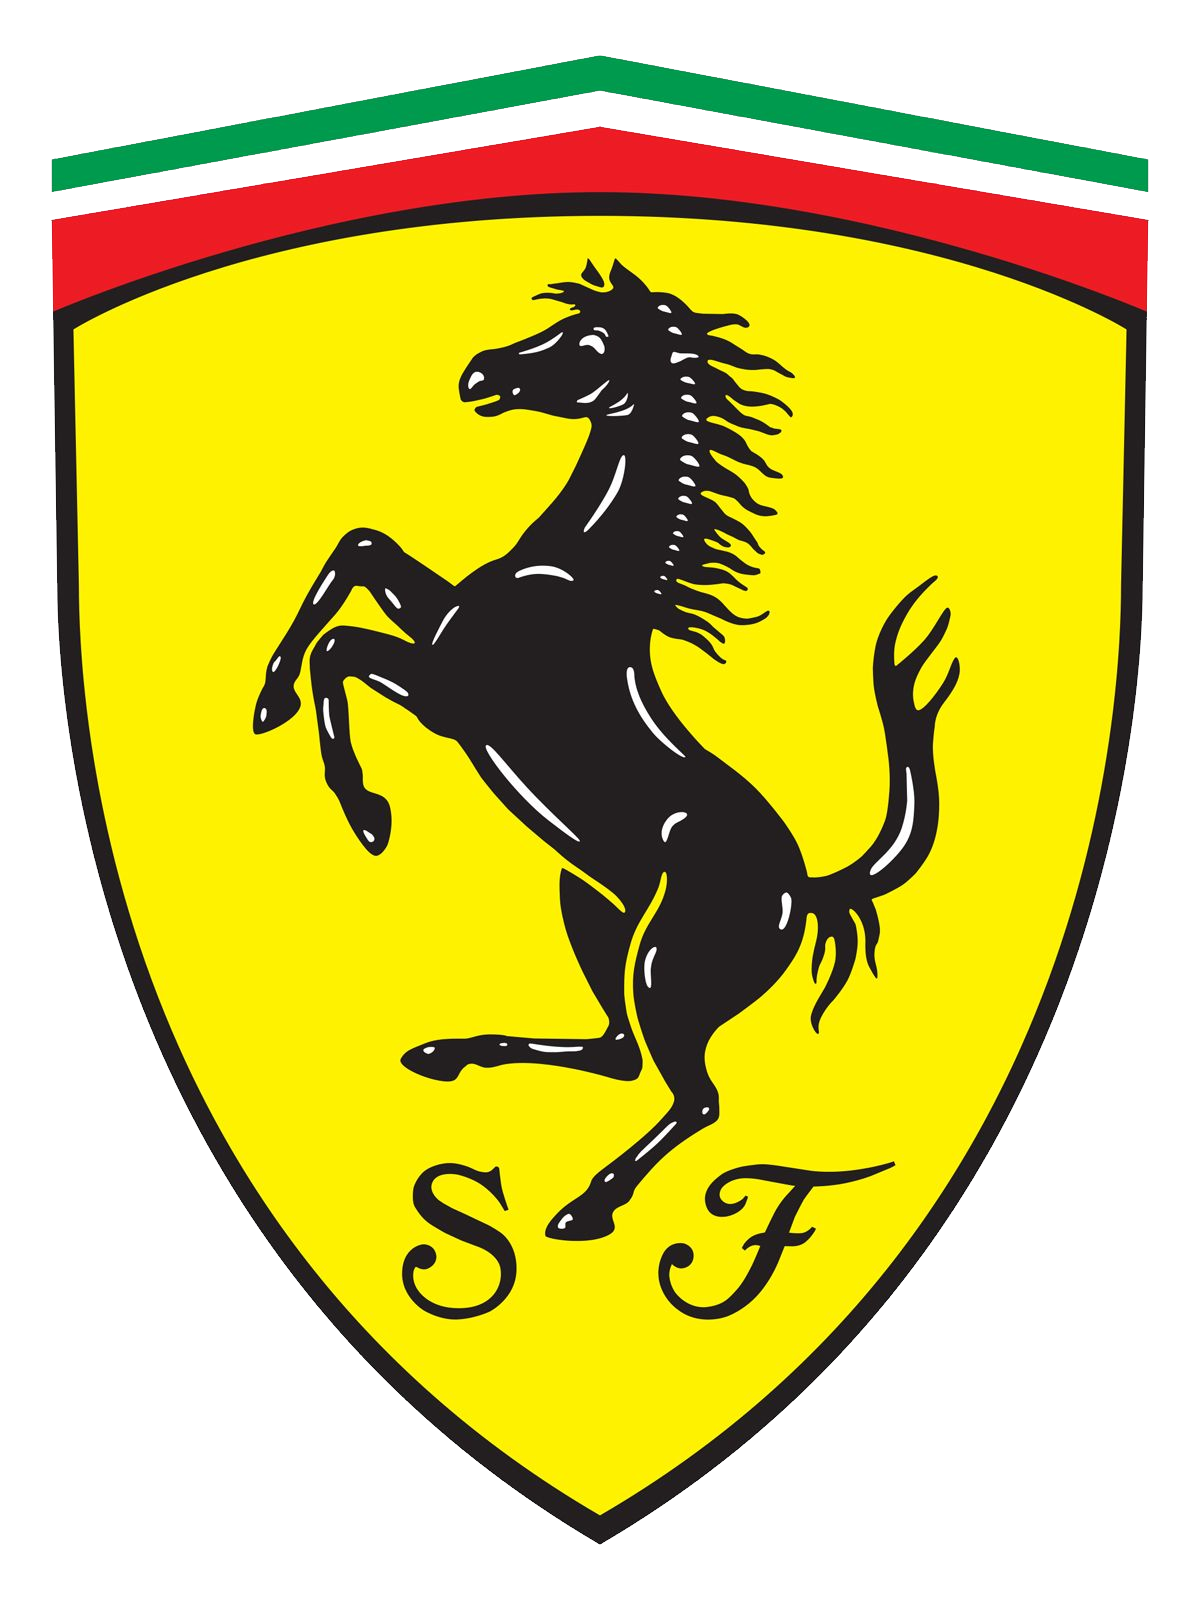 Ferrari logo image . Crest png clear background picture transparent stock